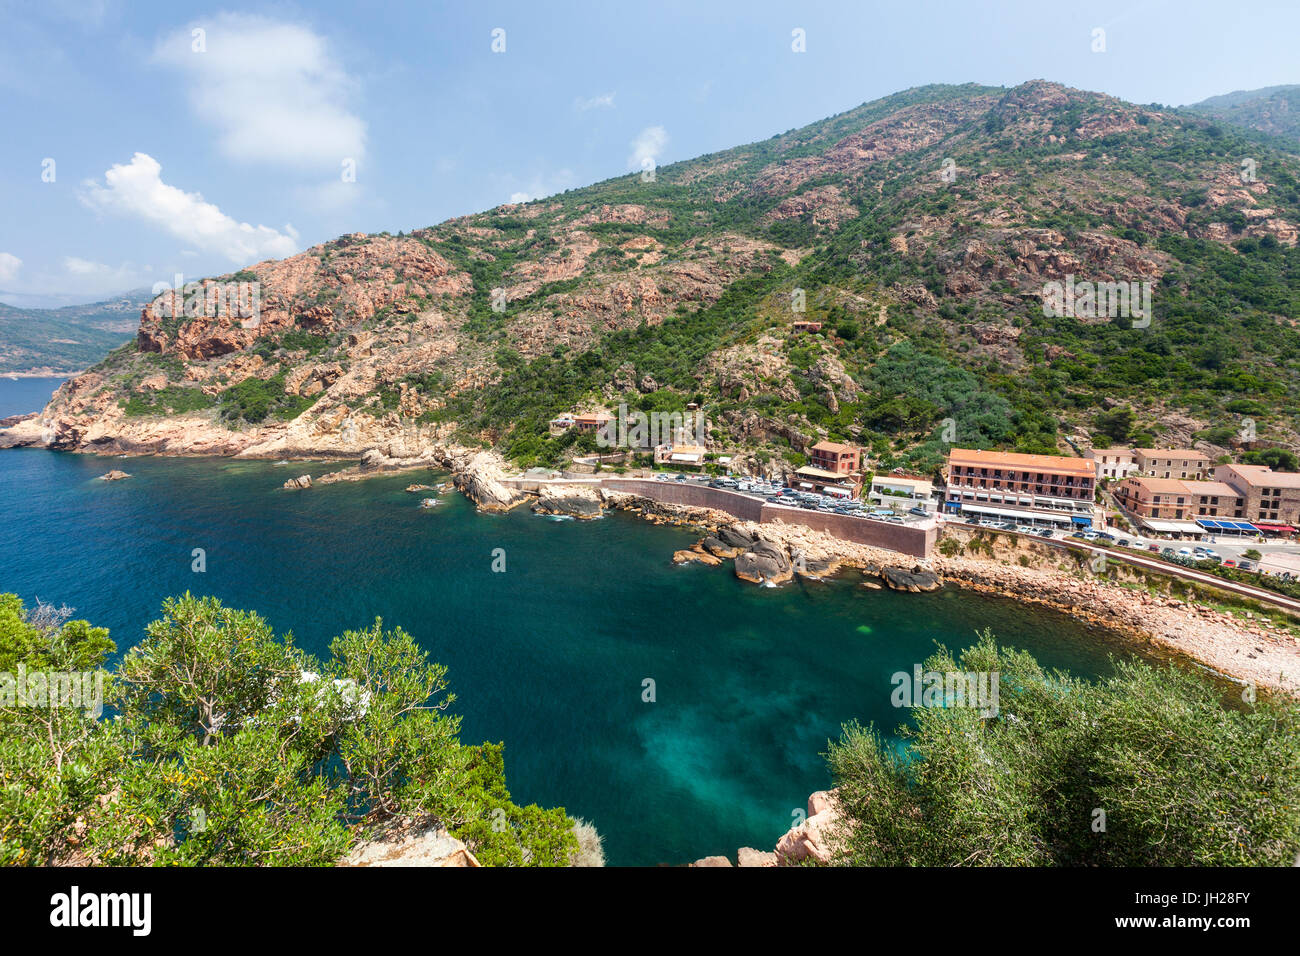 Top view of turquoise sea framed by green vegetation and the typical village of Porto, Southern Corsica, France, - Stock Image